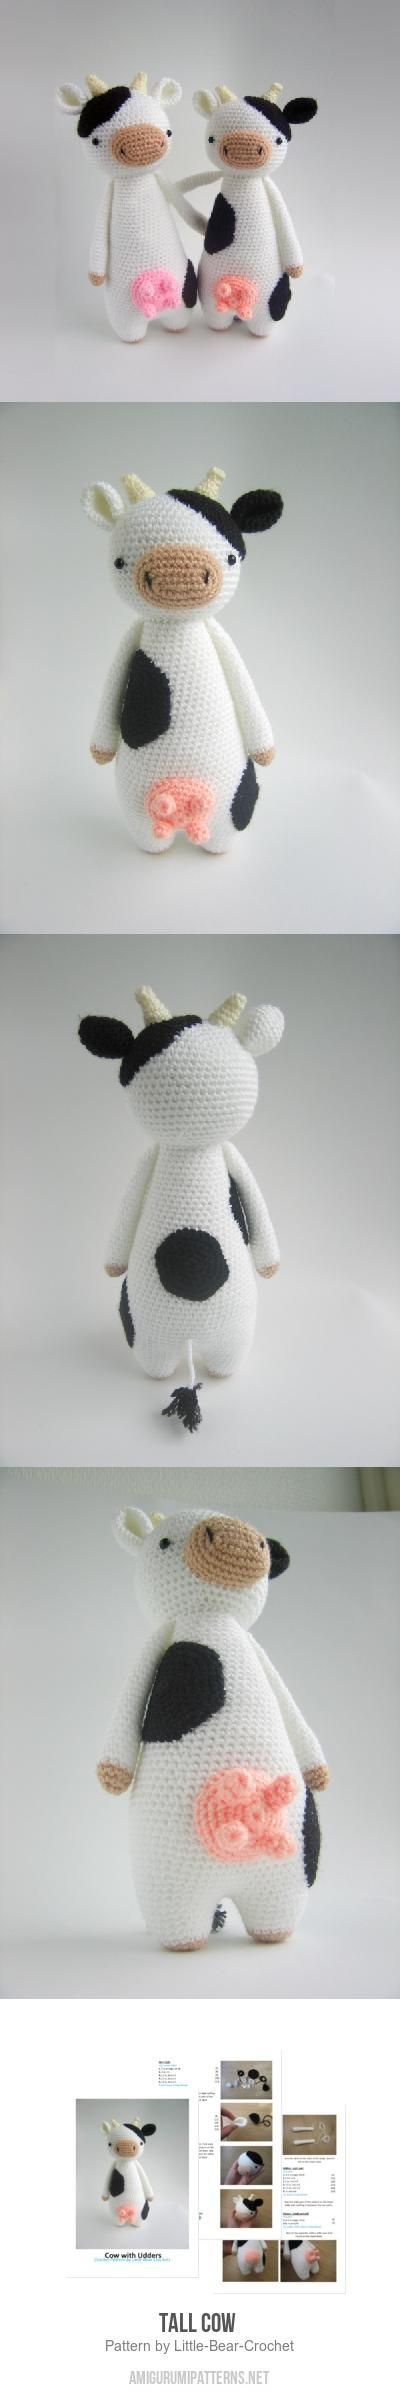 Tall Cow amigurumi pattern by Little Bear Crochet | Patrones ...